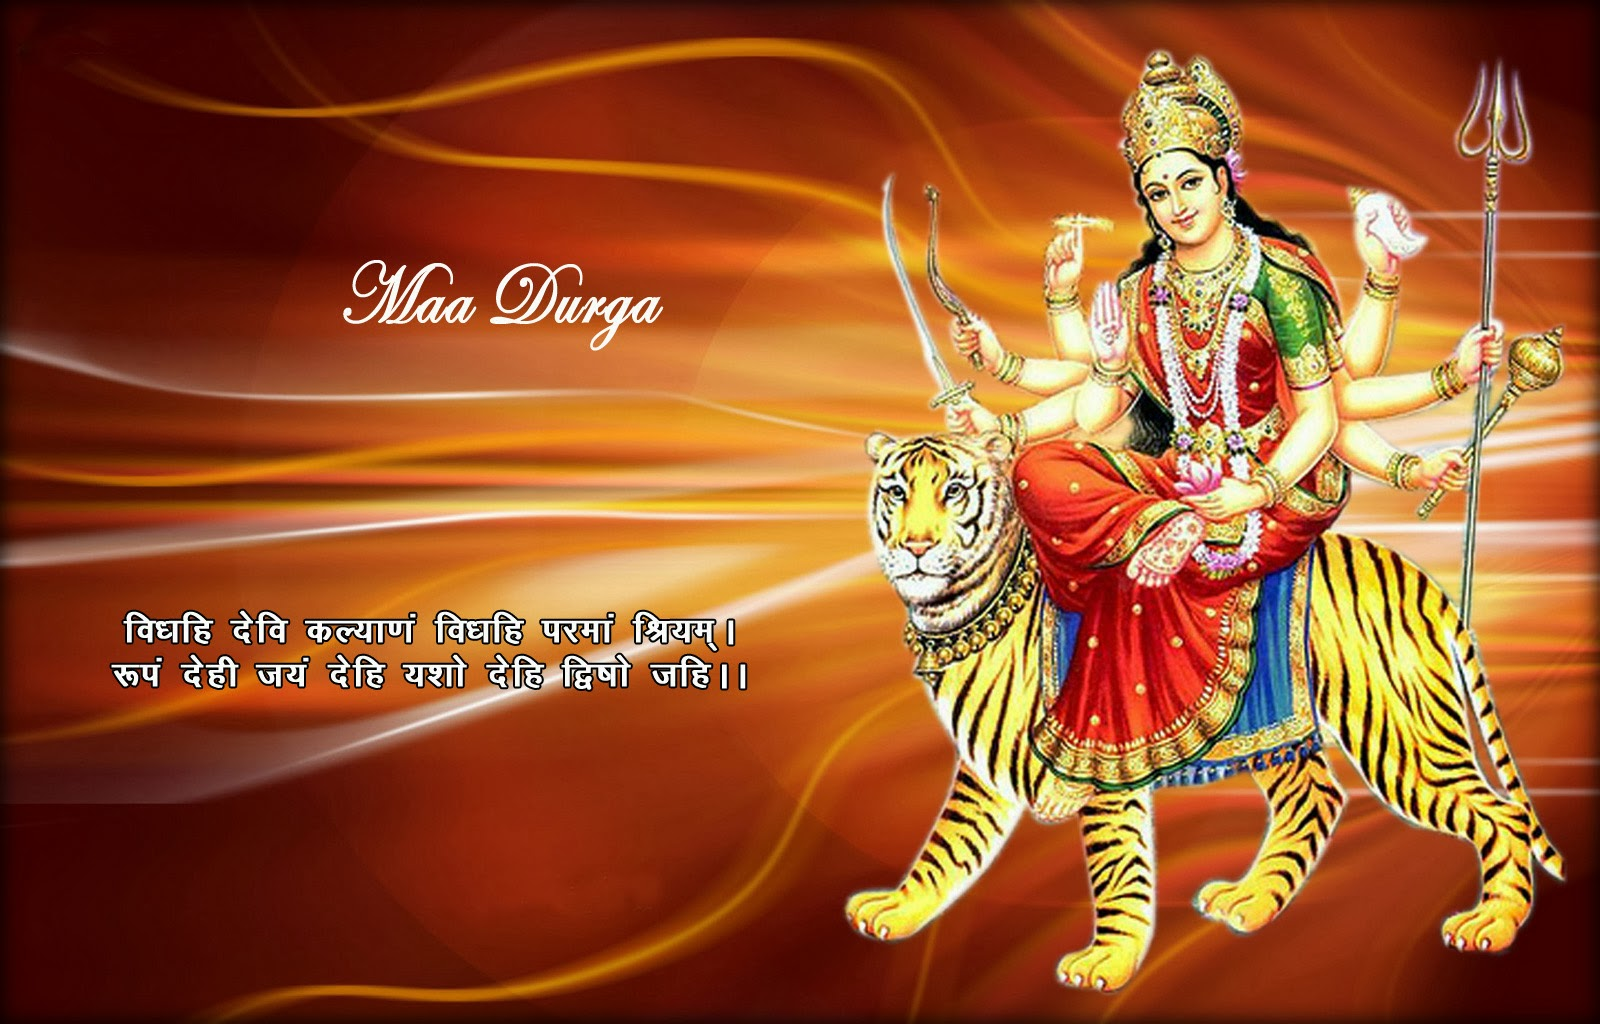 Full Size Maa Durga HD Wallpaper, Photo Gallery - Festival Chaska